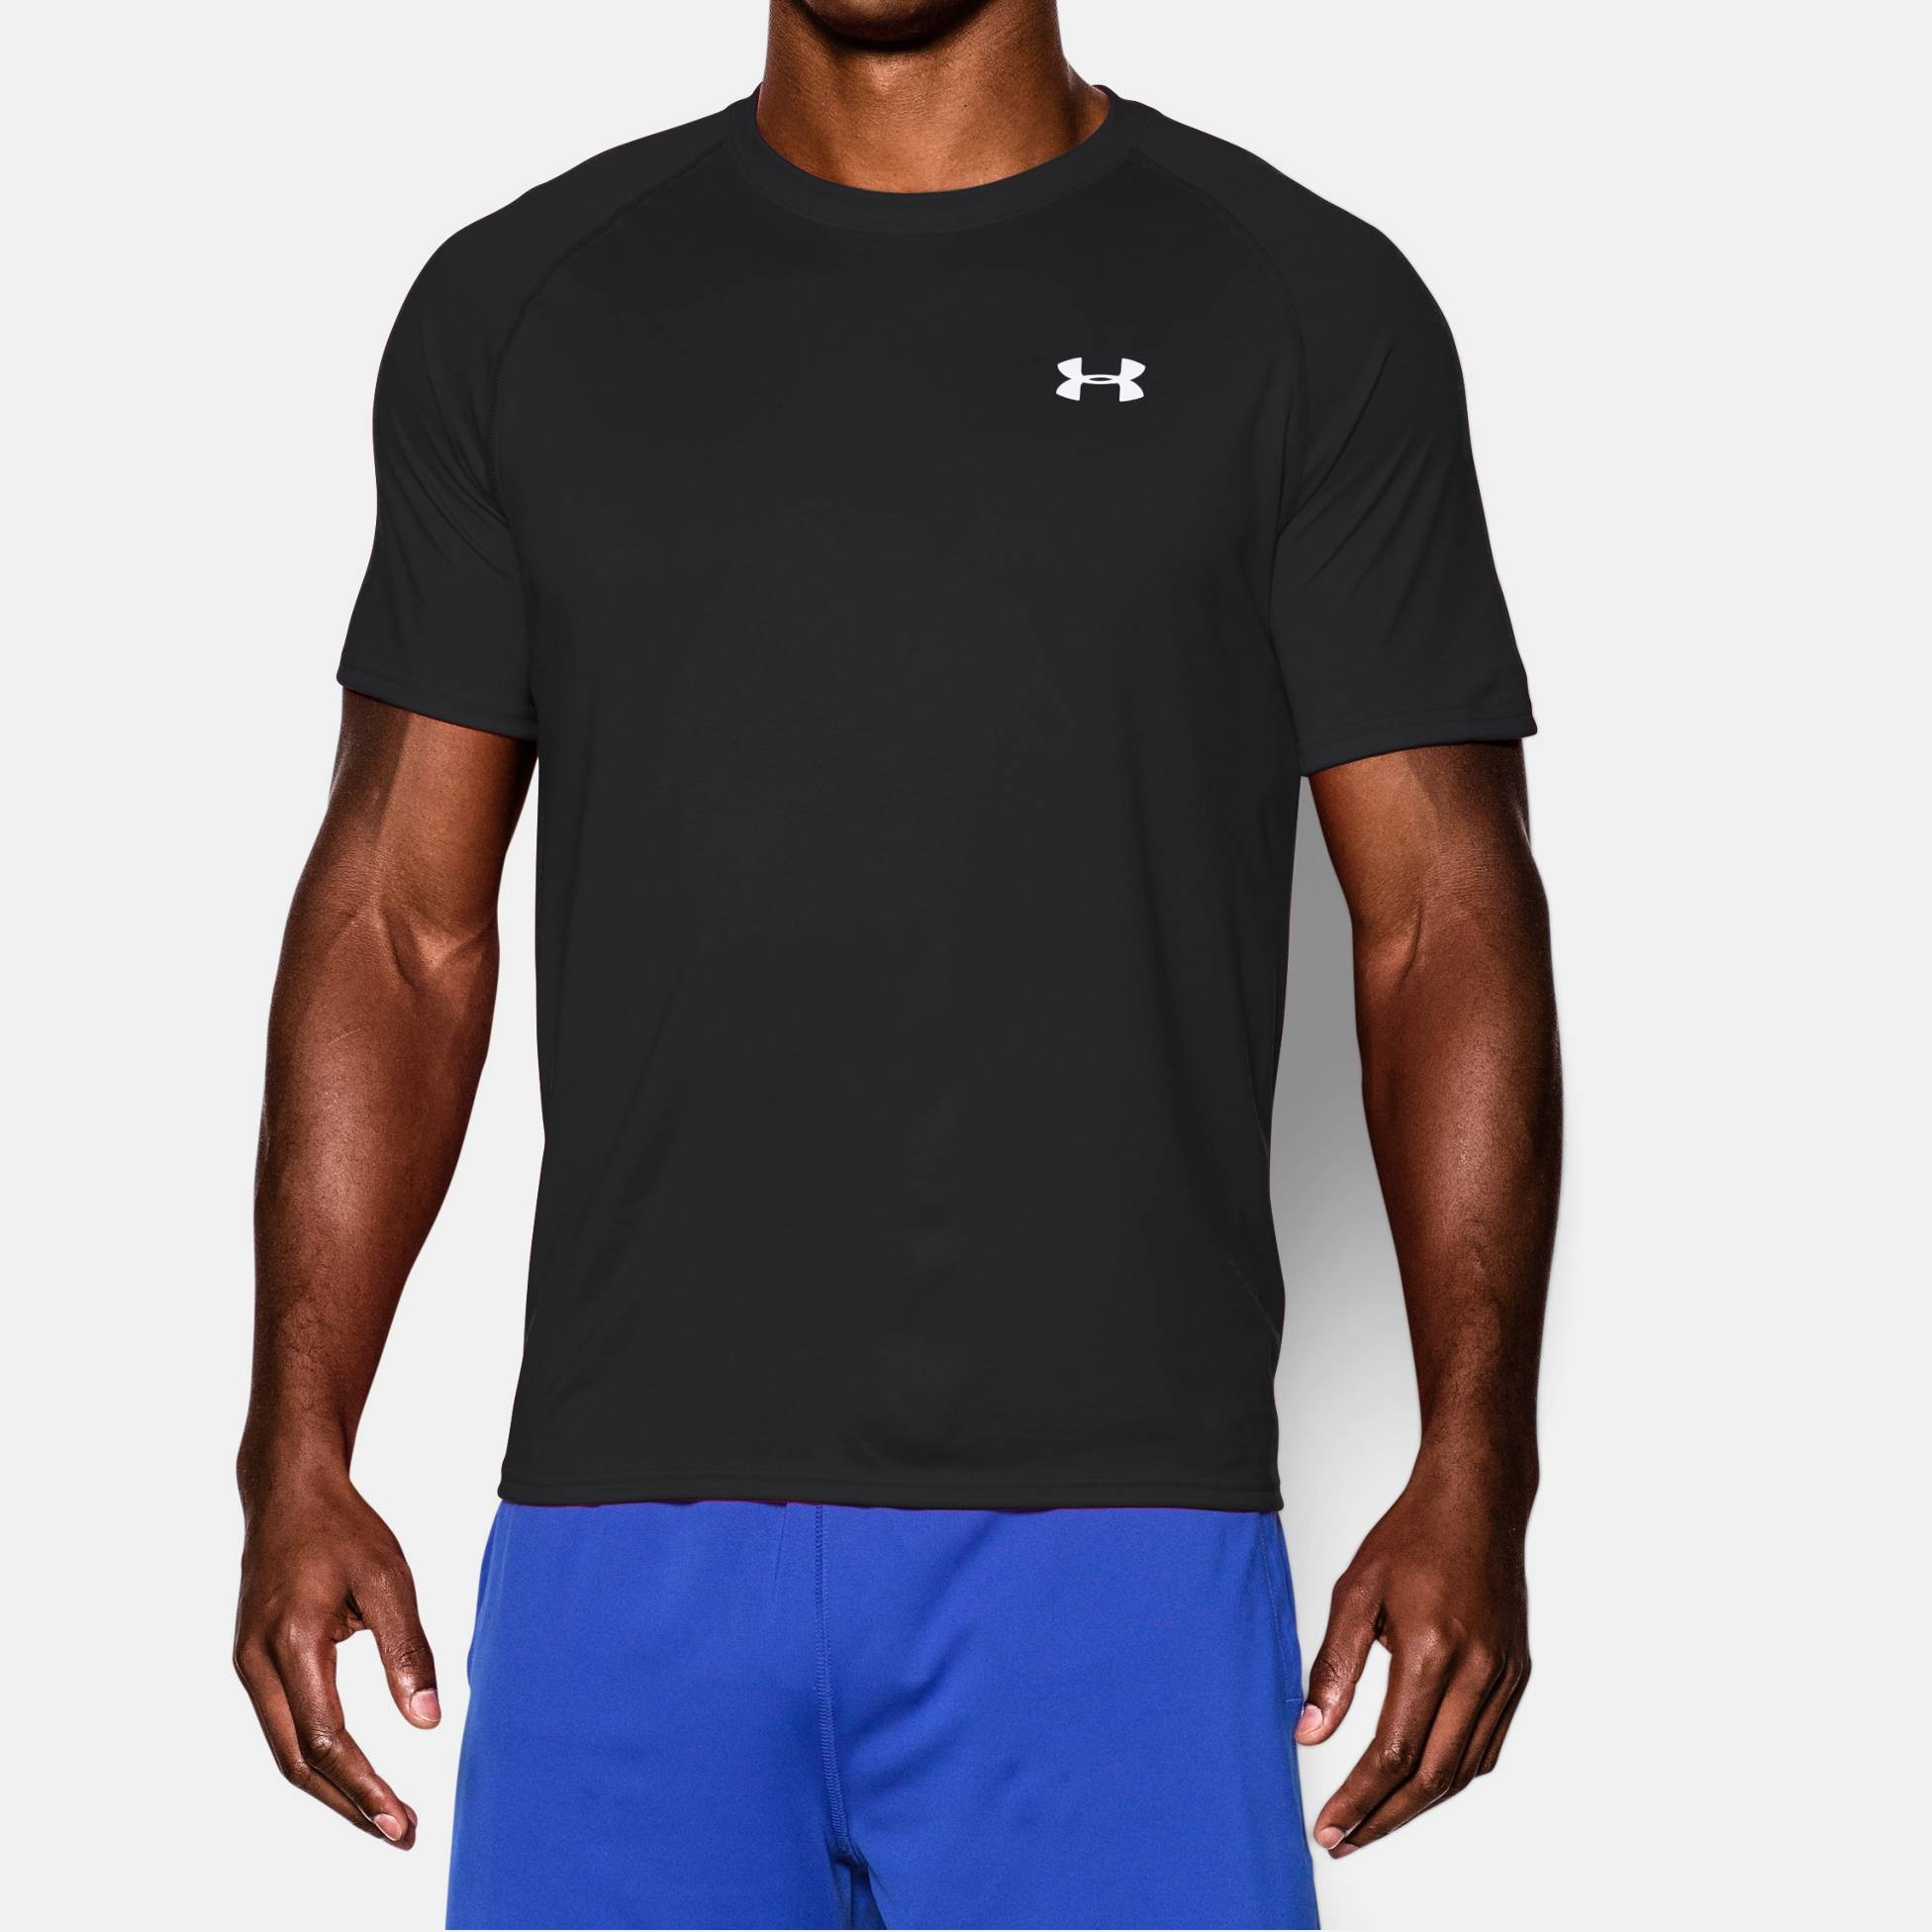 Clothing under armour tech short sleeve t shirt fitness for Under armour men s tech short sleeve t shirt